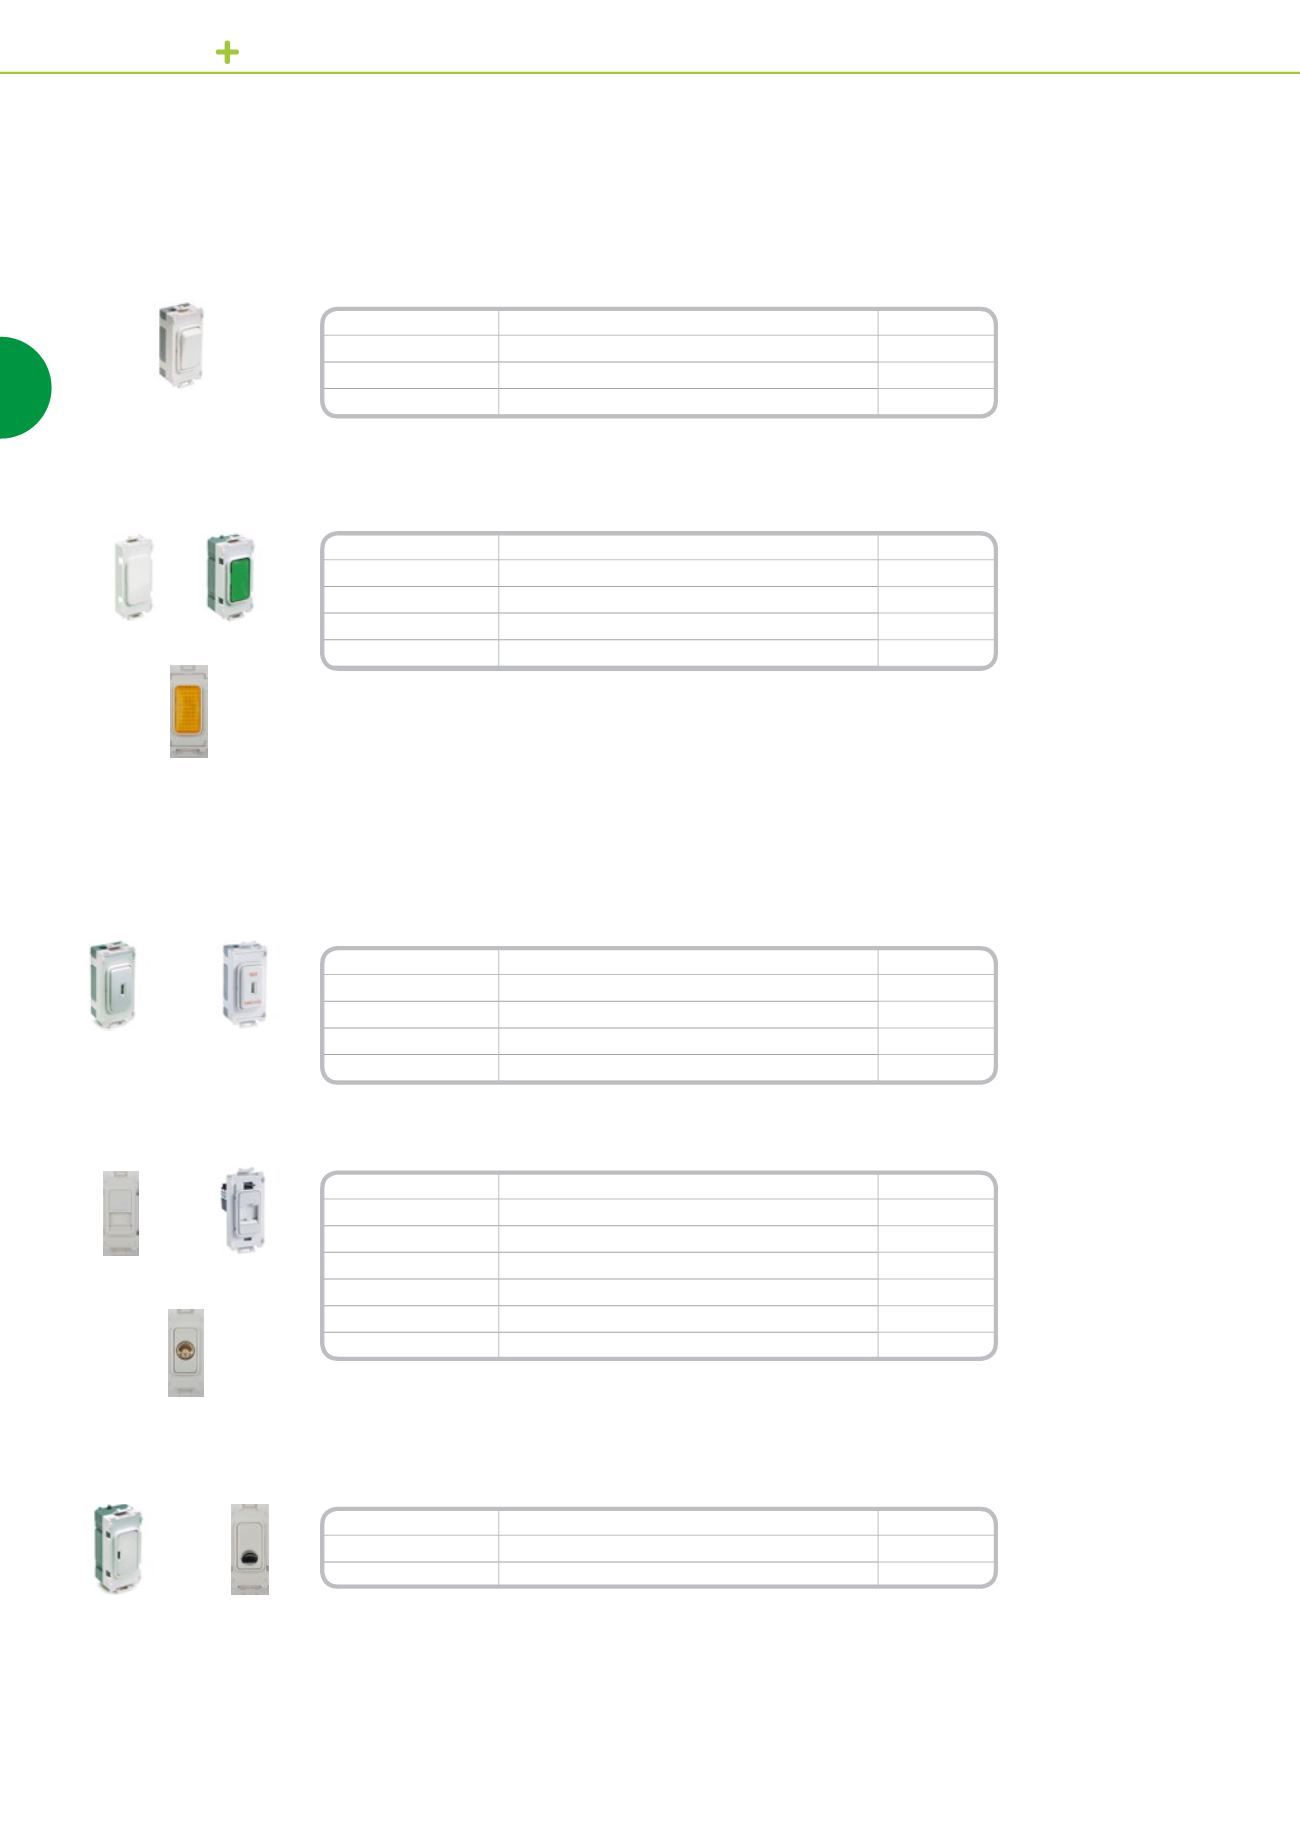 Schneider Electric Wiring Devices Catalogue 2 Way Retractive Switch Page Background